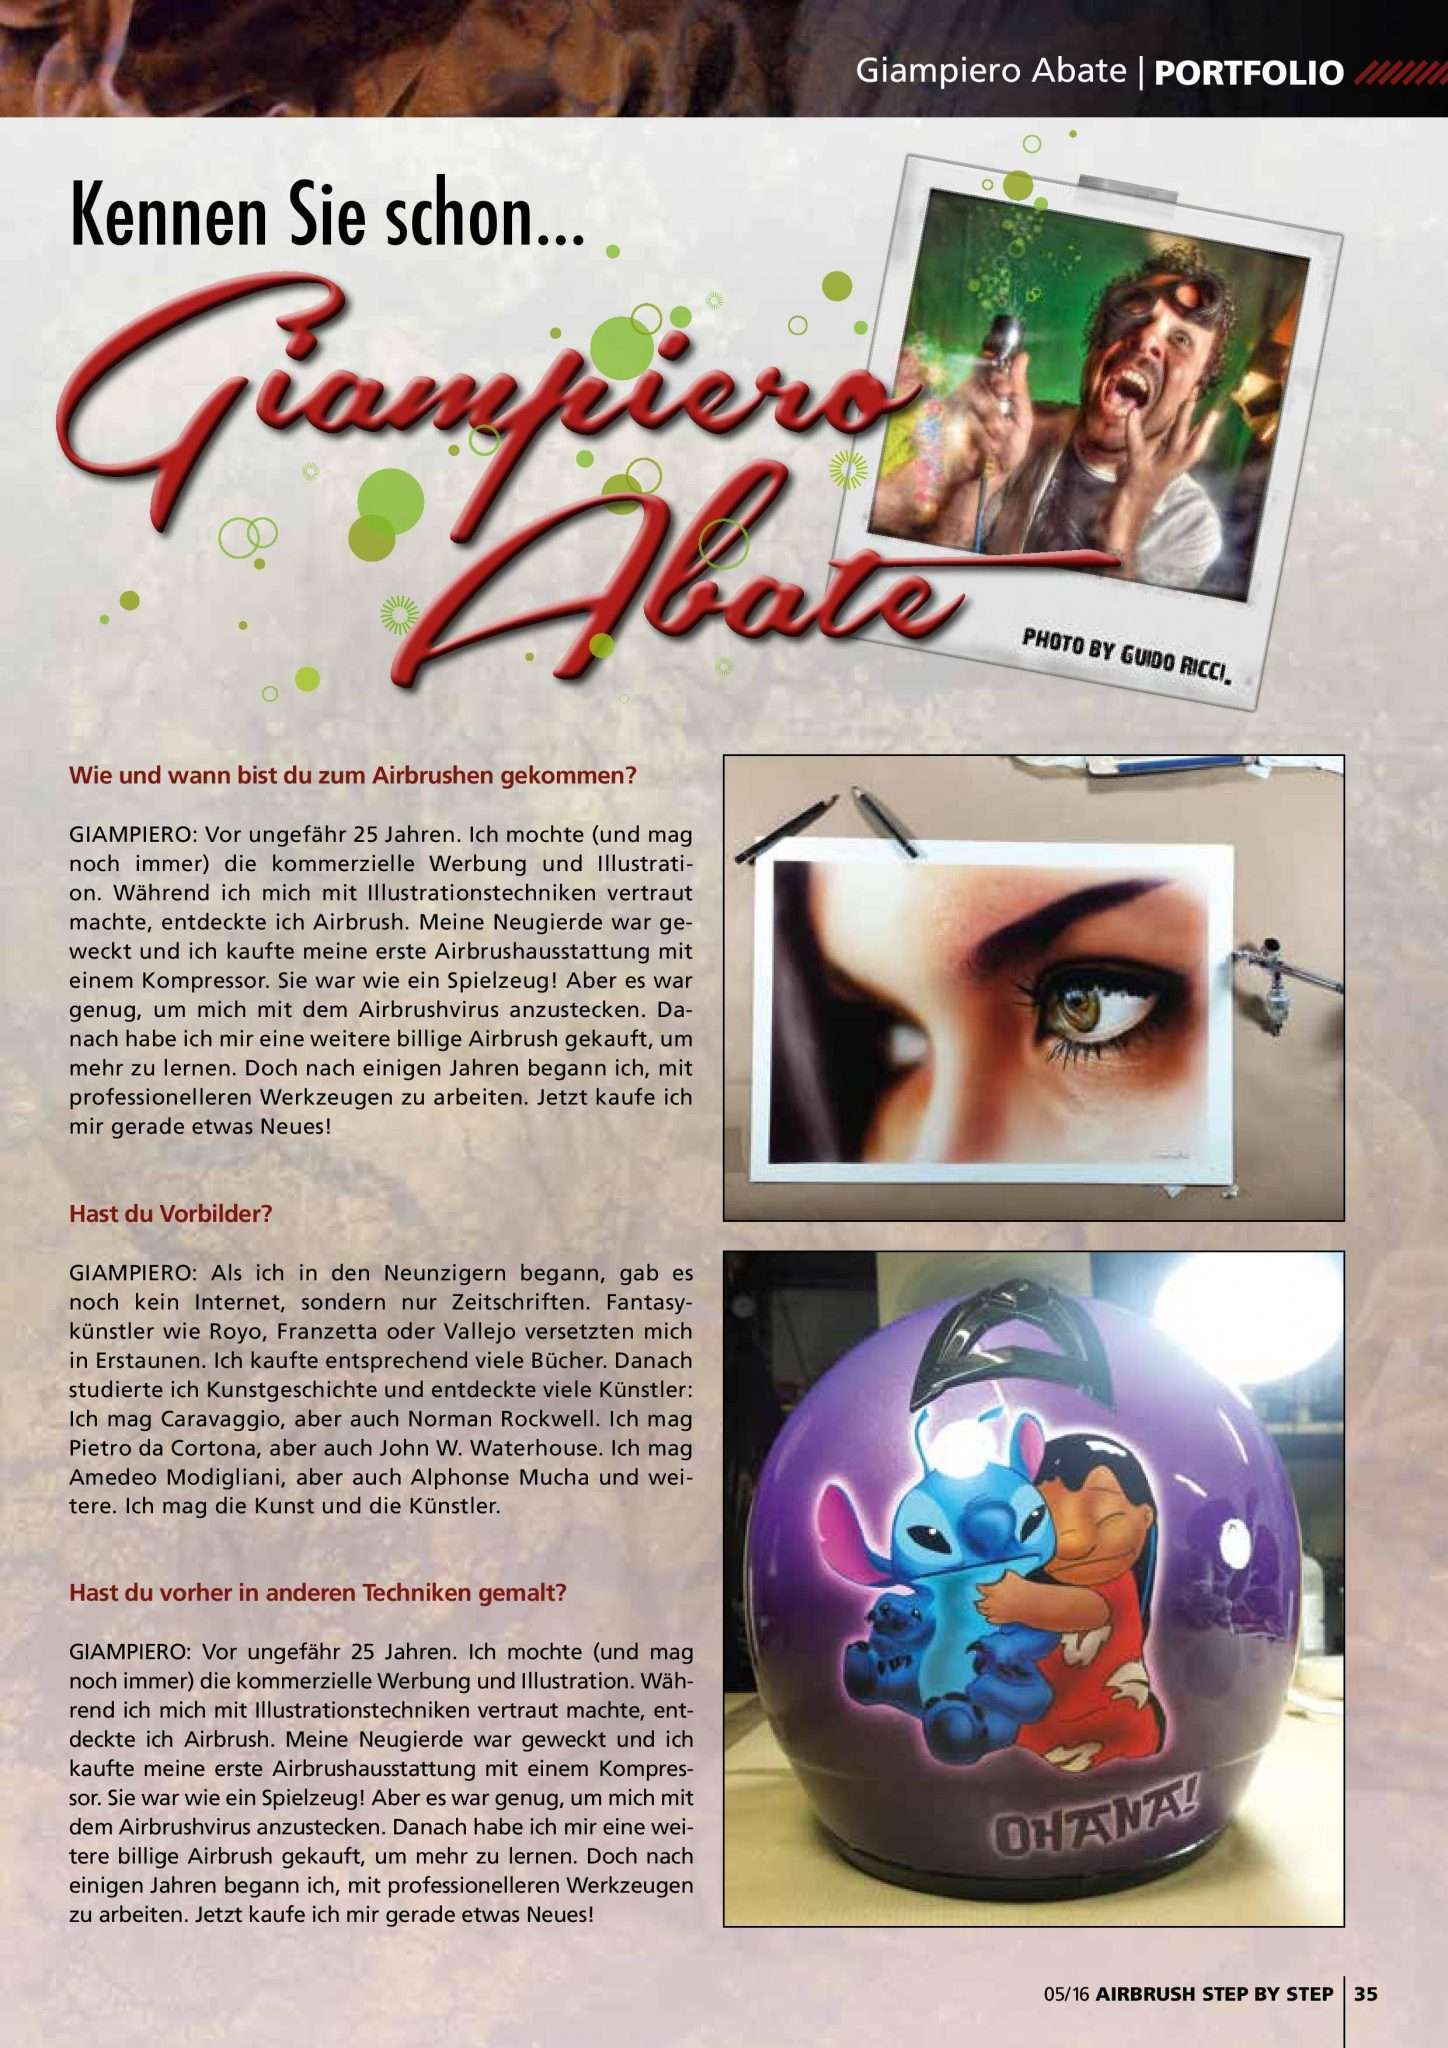 Intervista su Airbrush Step by Step Magazin